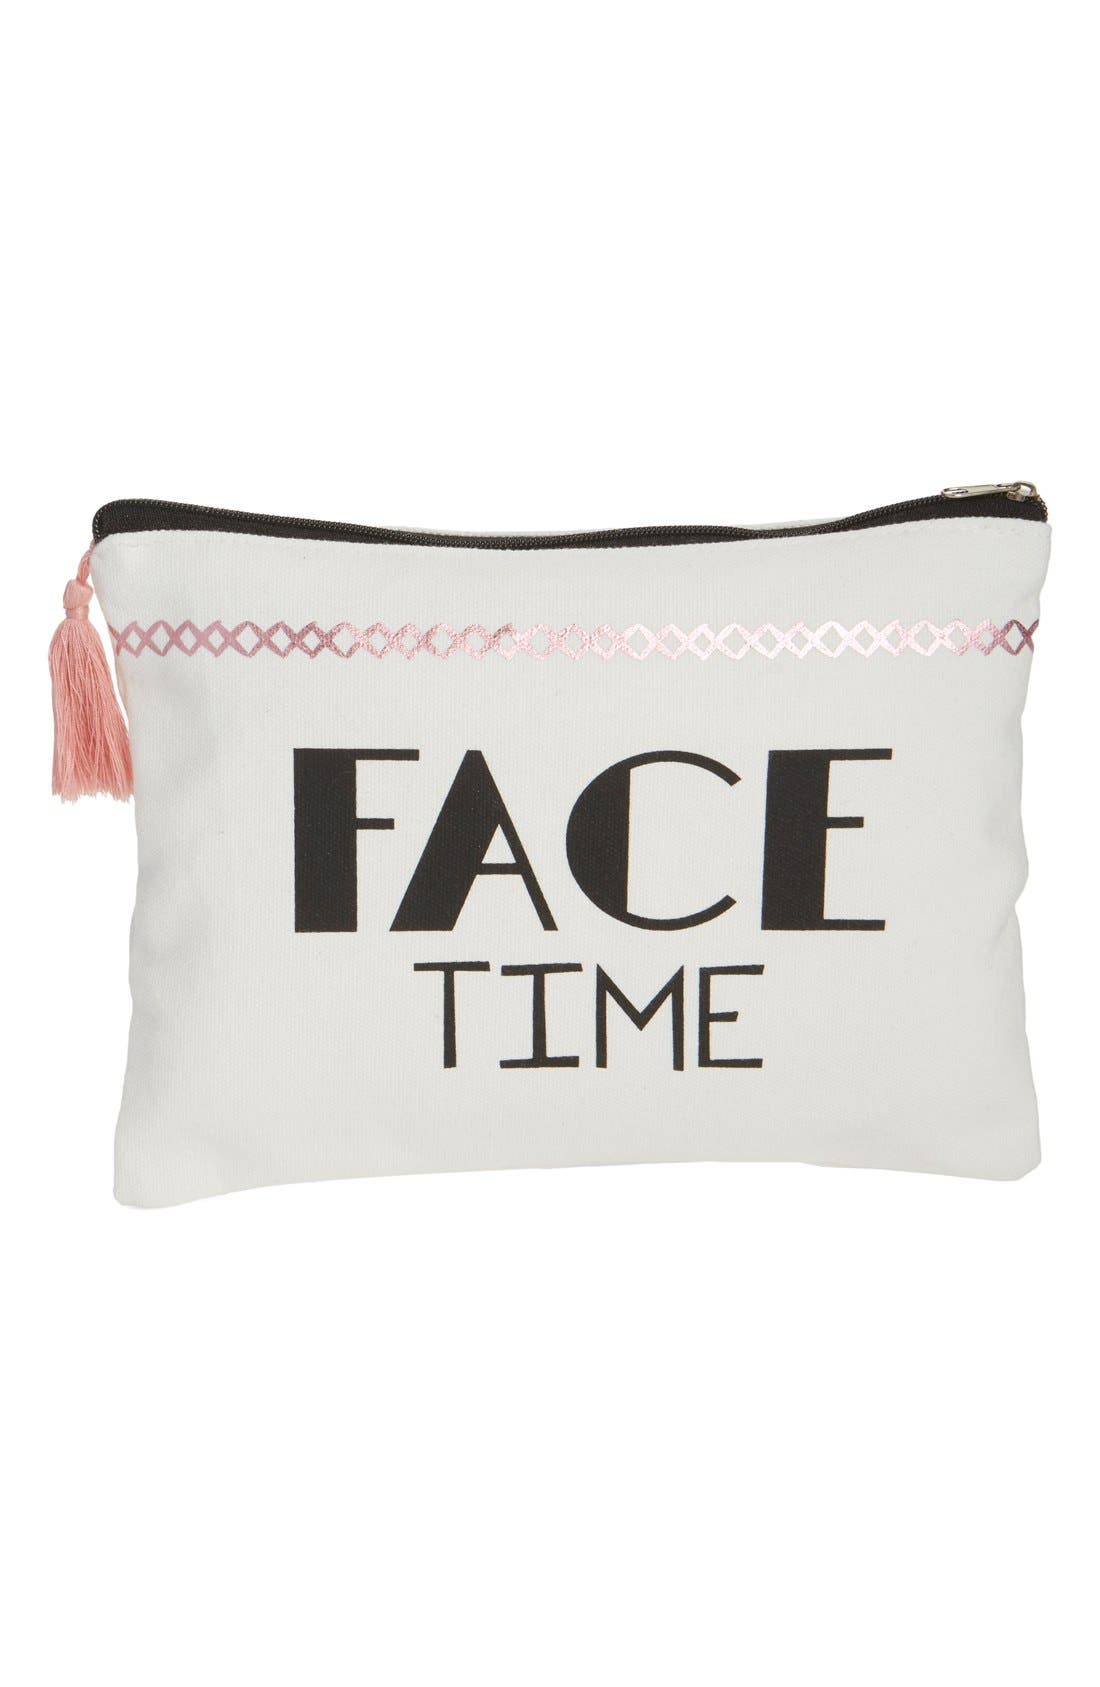 Alternate Image 1 Selected - Levtex 'Face Time' Accessory Bag